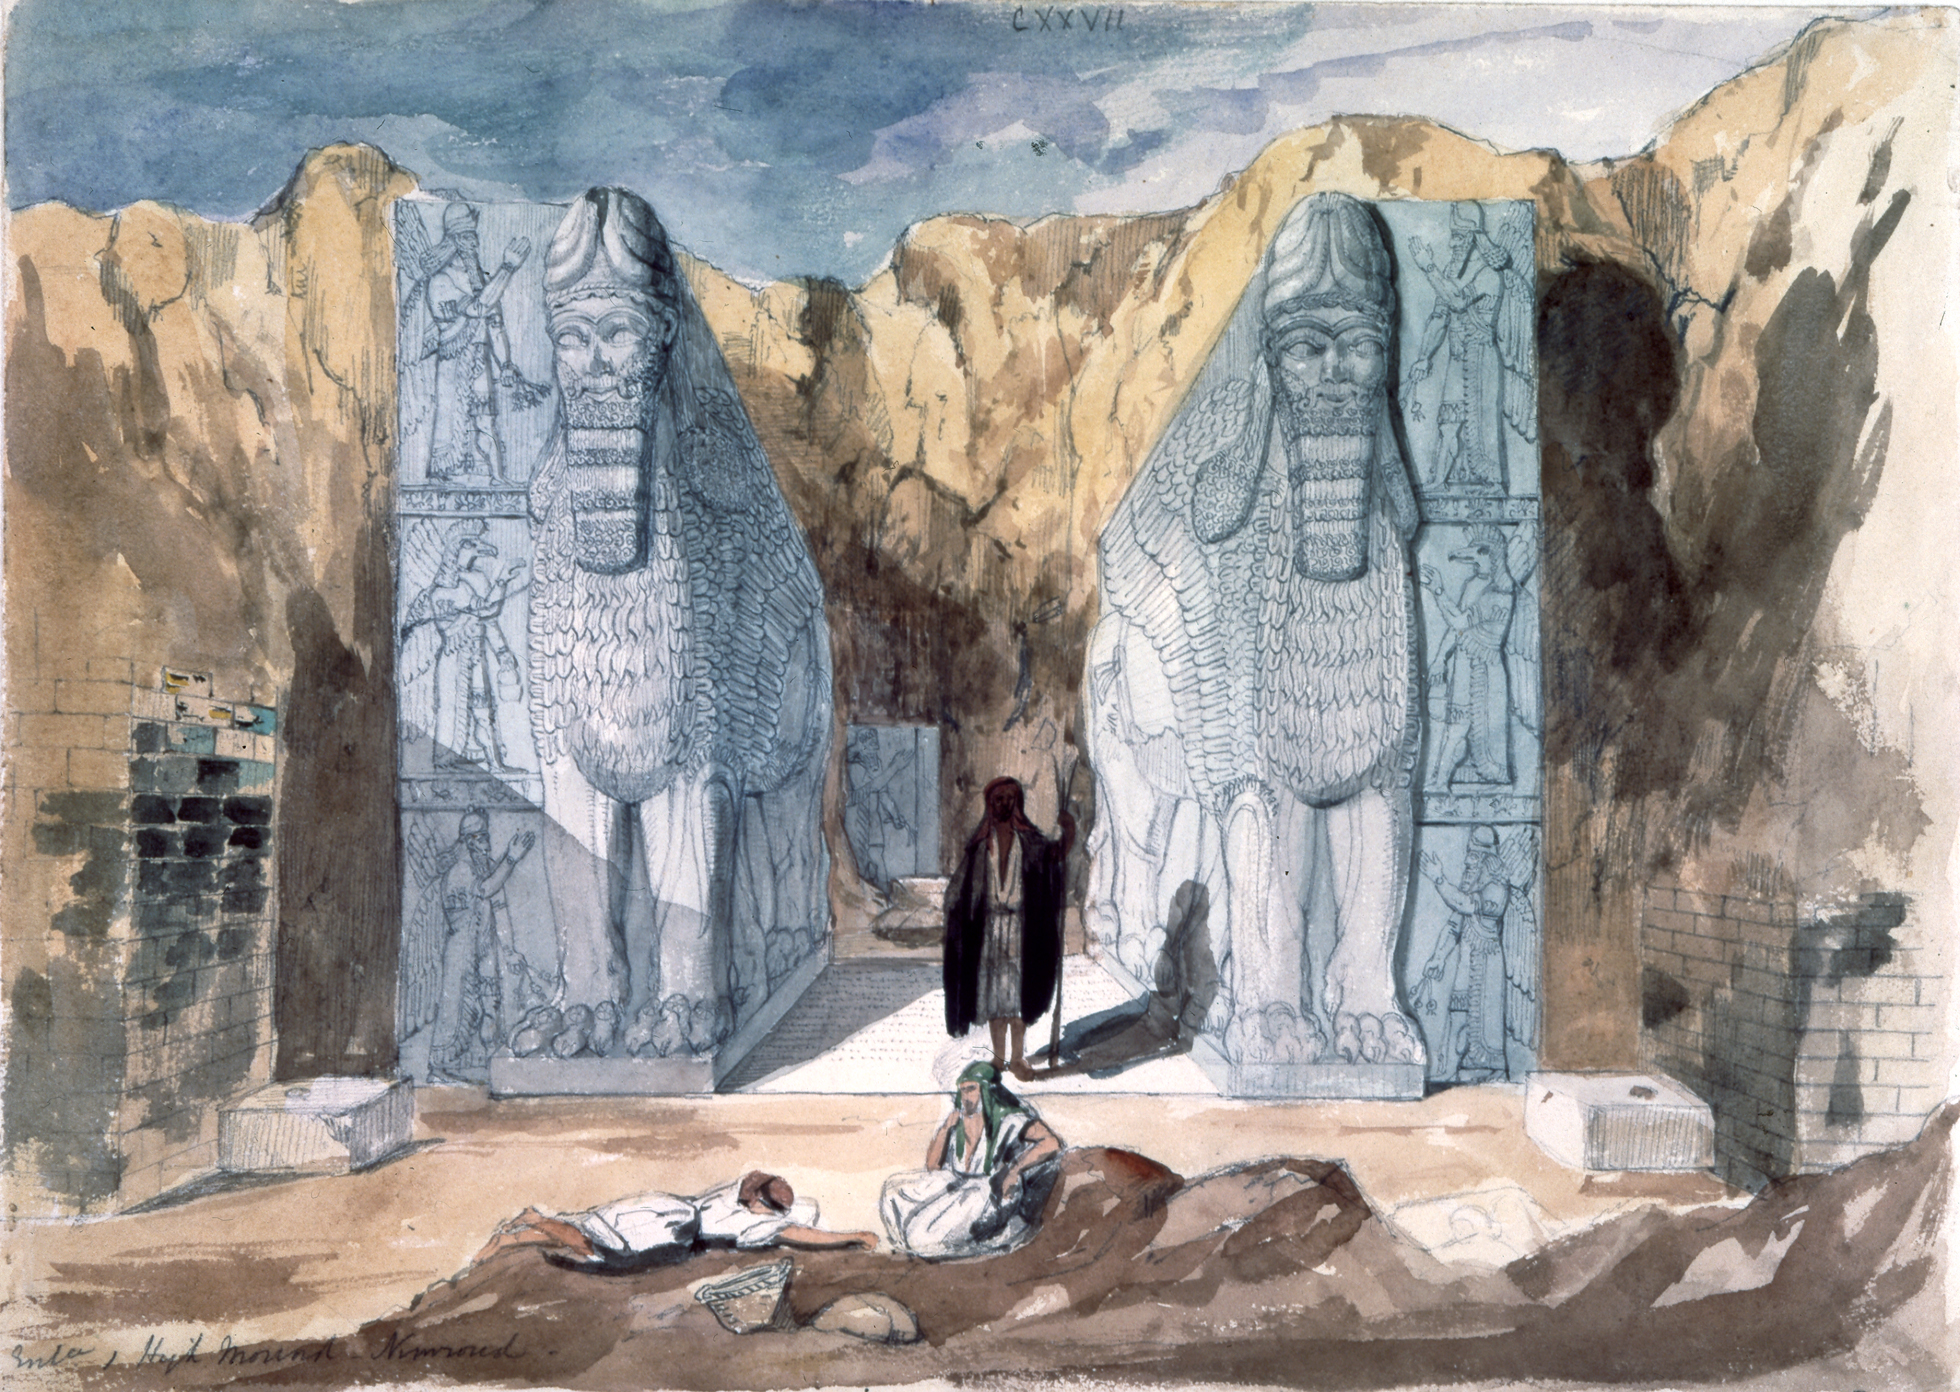 Sparking the imagination: the rediscovery of Assyria's great lost city